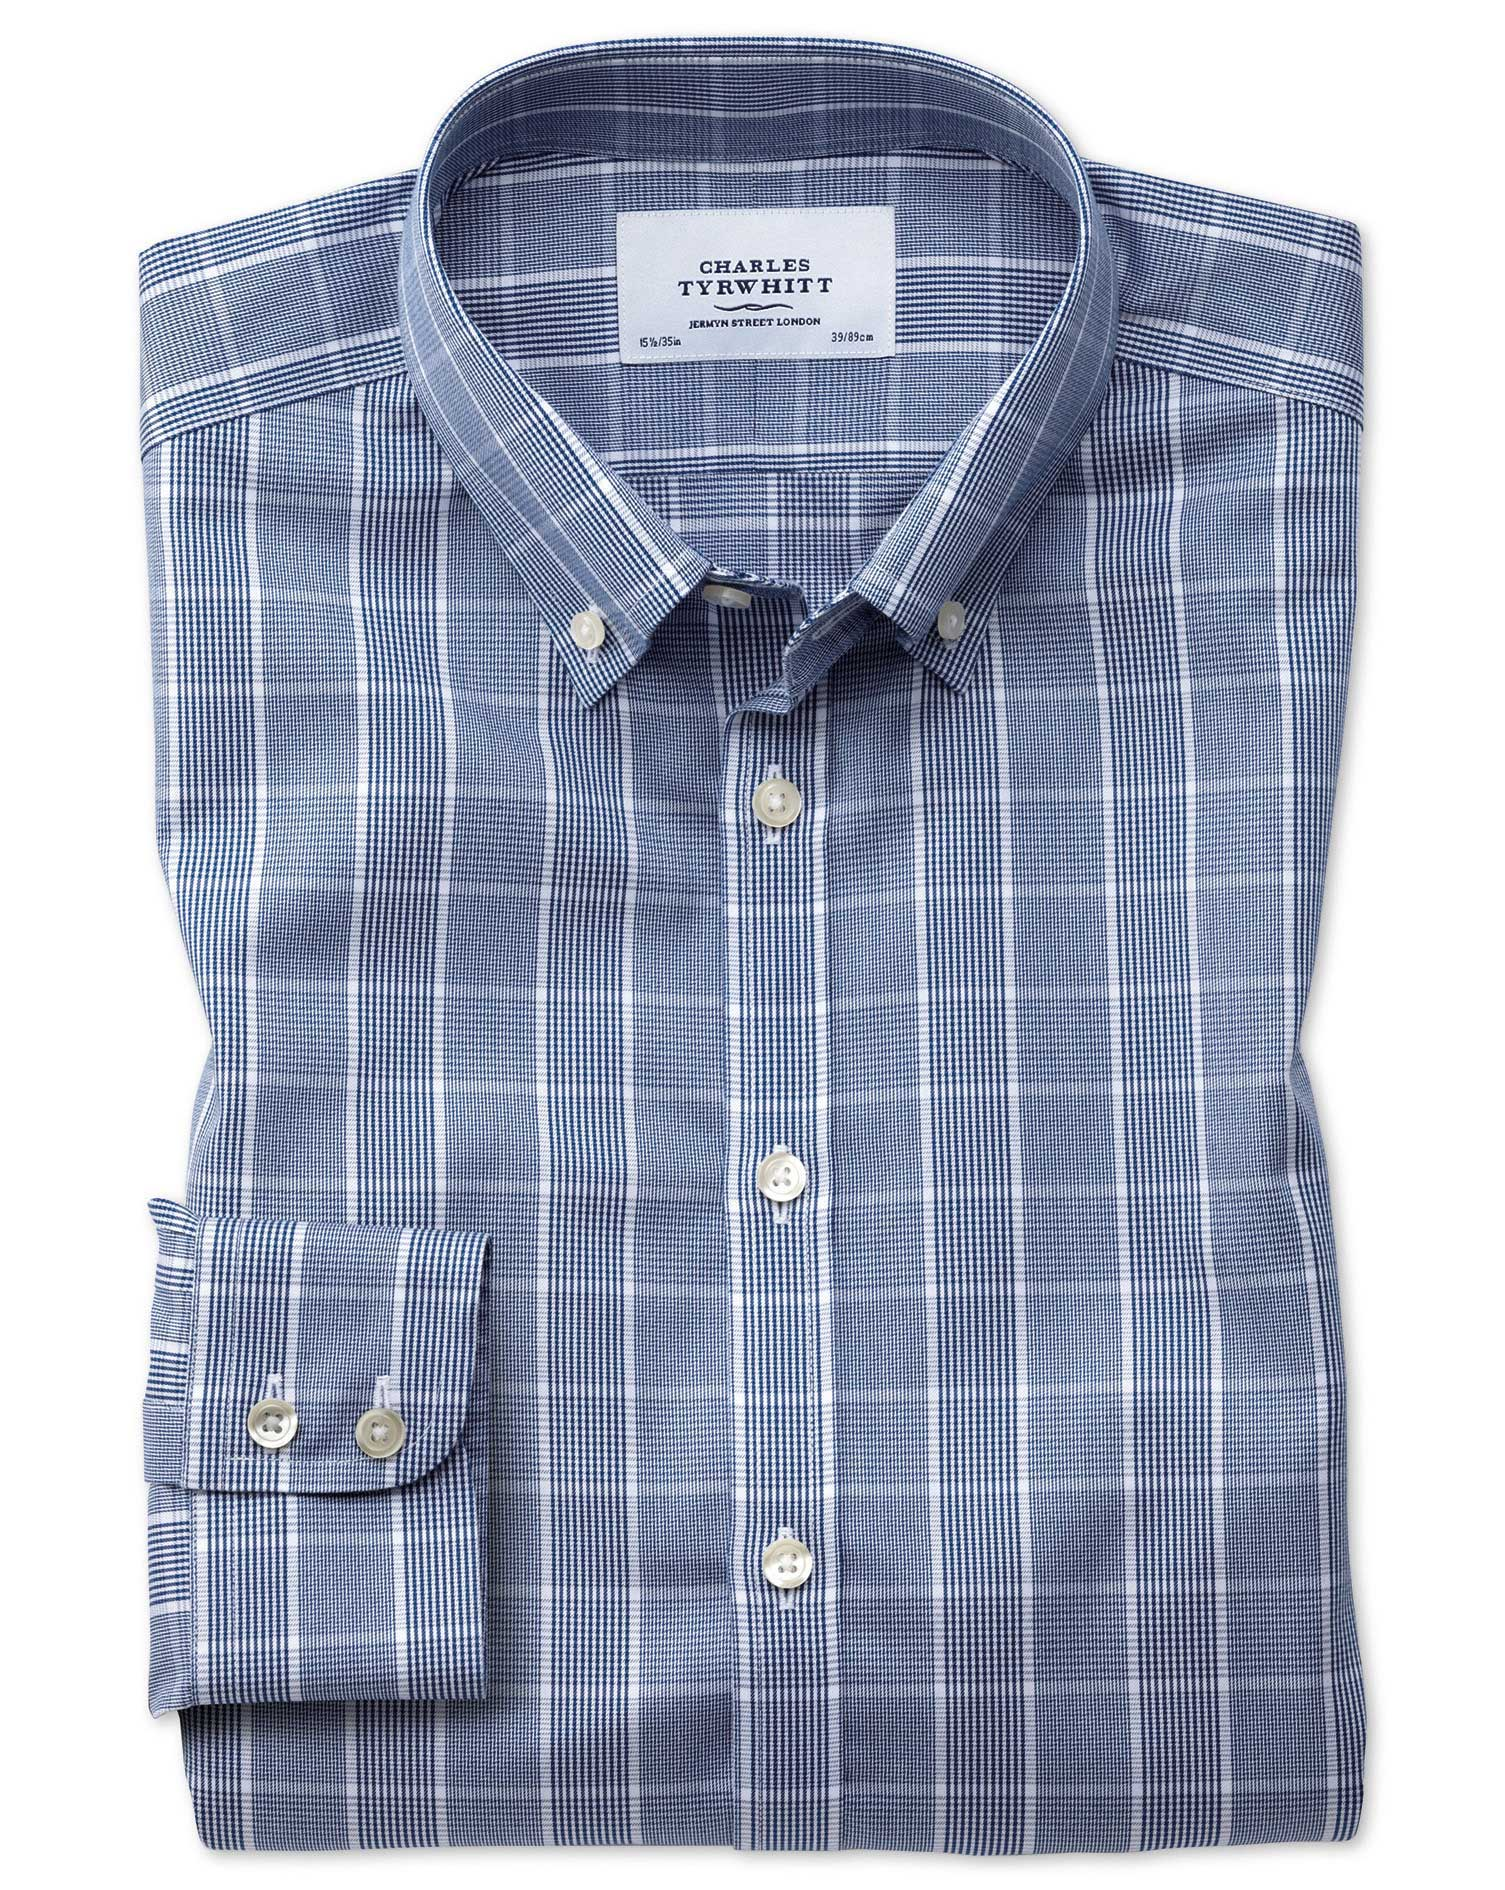 Classic Fit Button-Down Non-Iron Prince Of Wales Navy Blue and White Cotton Formal Shirt Single Cuff